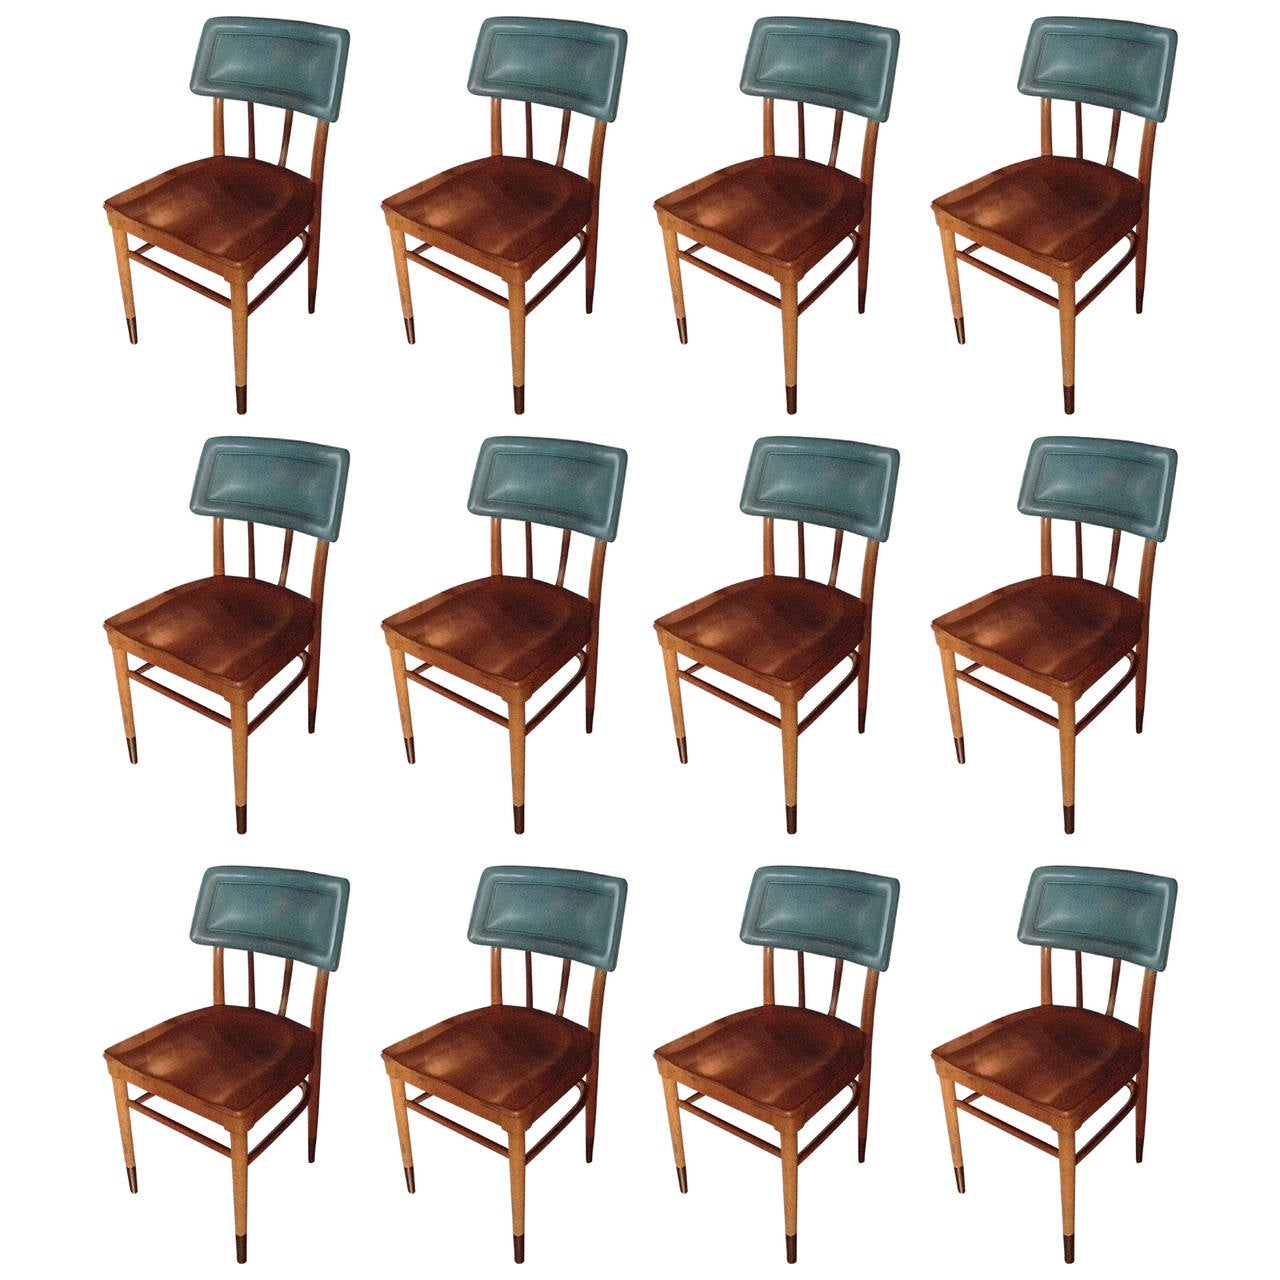 Set of 16 thonet midcentury side chairs with turquoise upholstered back at 1stdibs - Turquoise upholstered dining chair ...